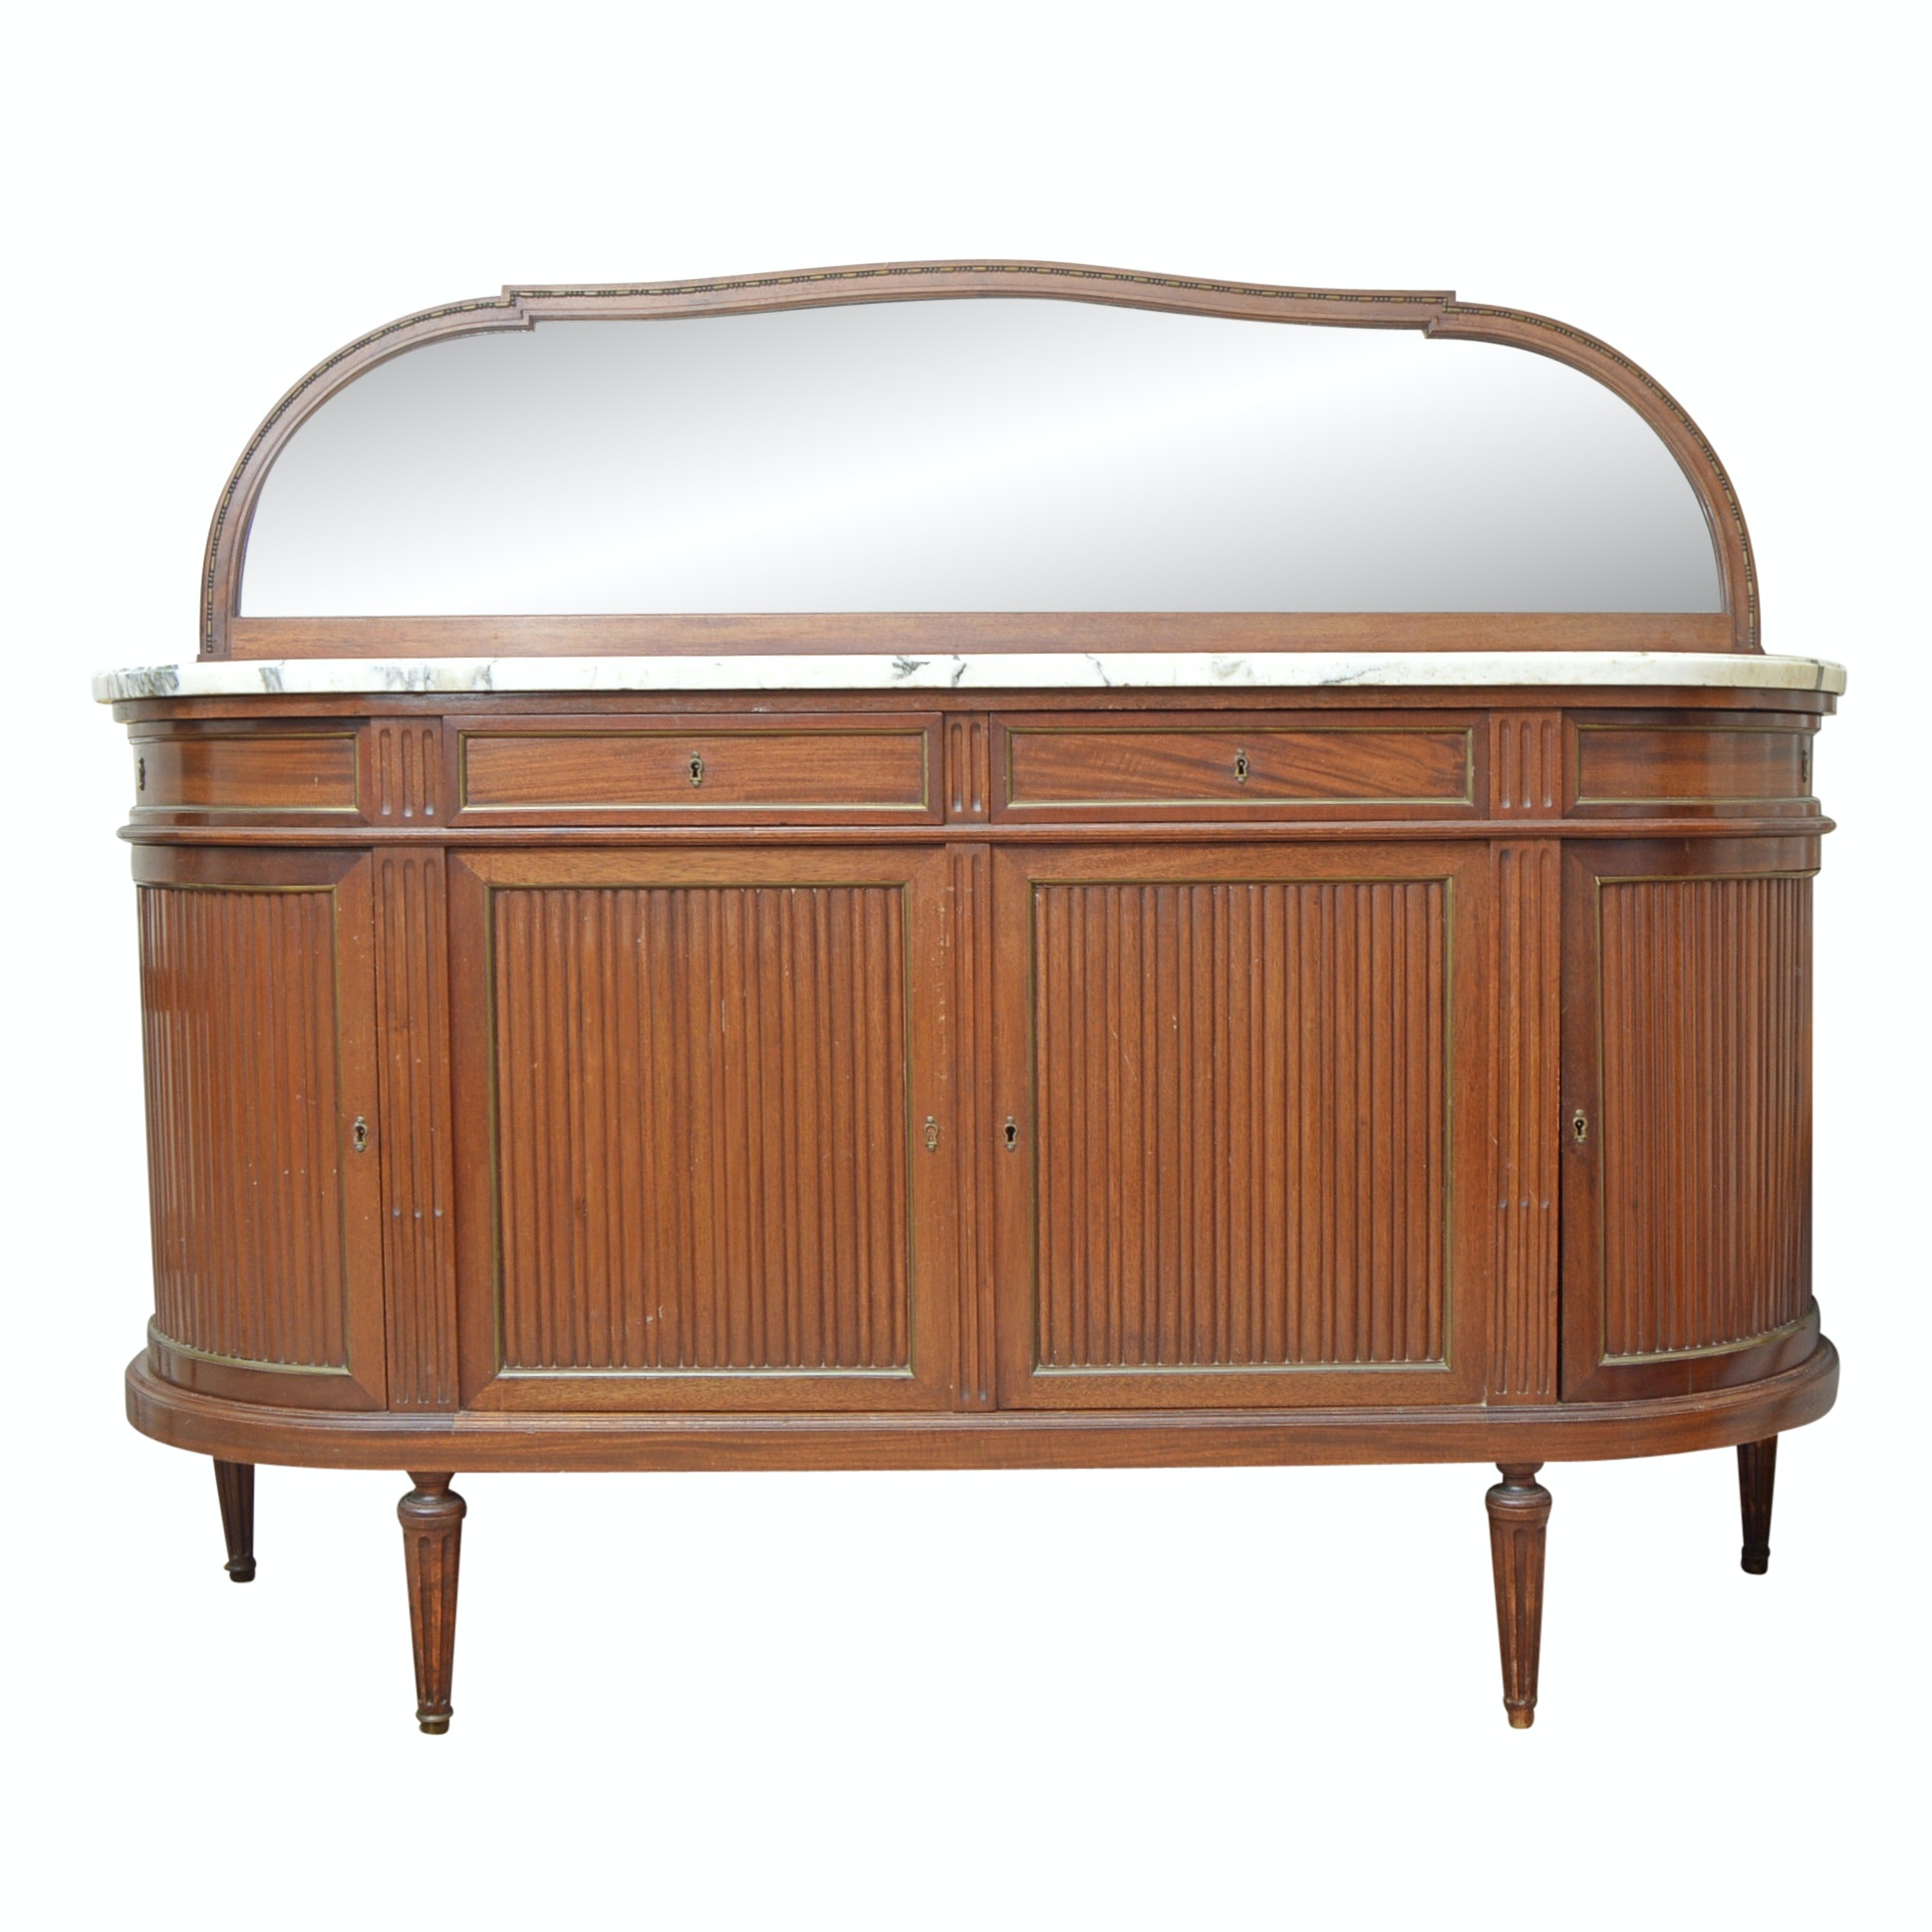 Vintage Neoclassic Style Marble-Topped Mahogany Sideboard with Mirror